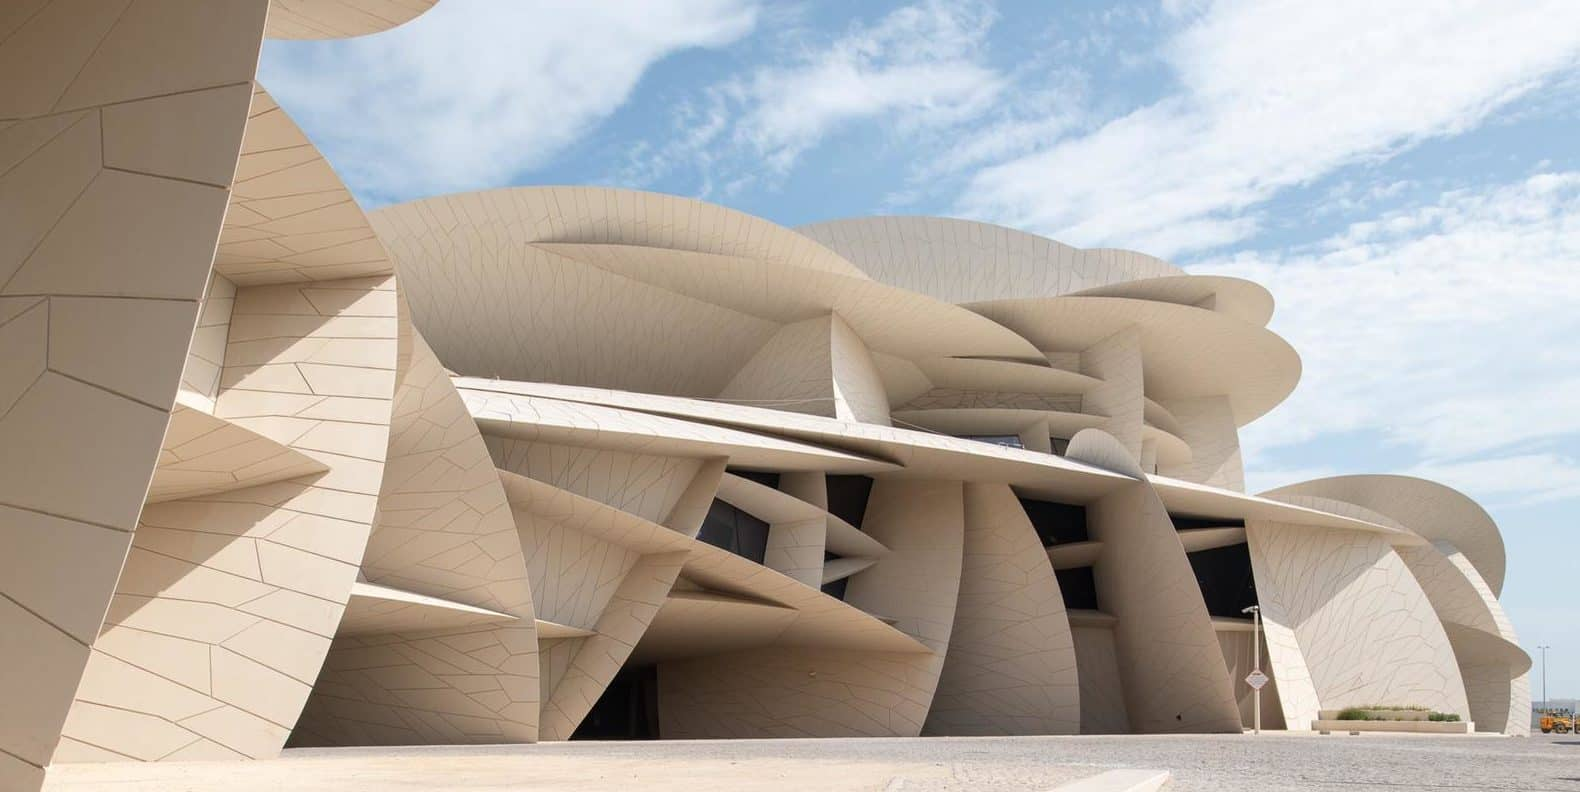 ARCHITECTS in Doha Qatar